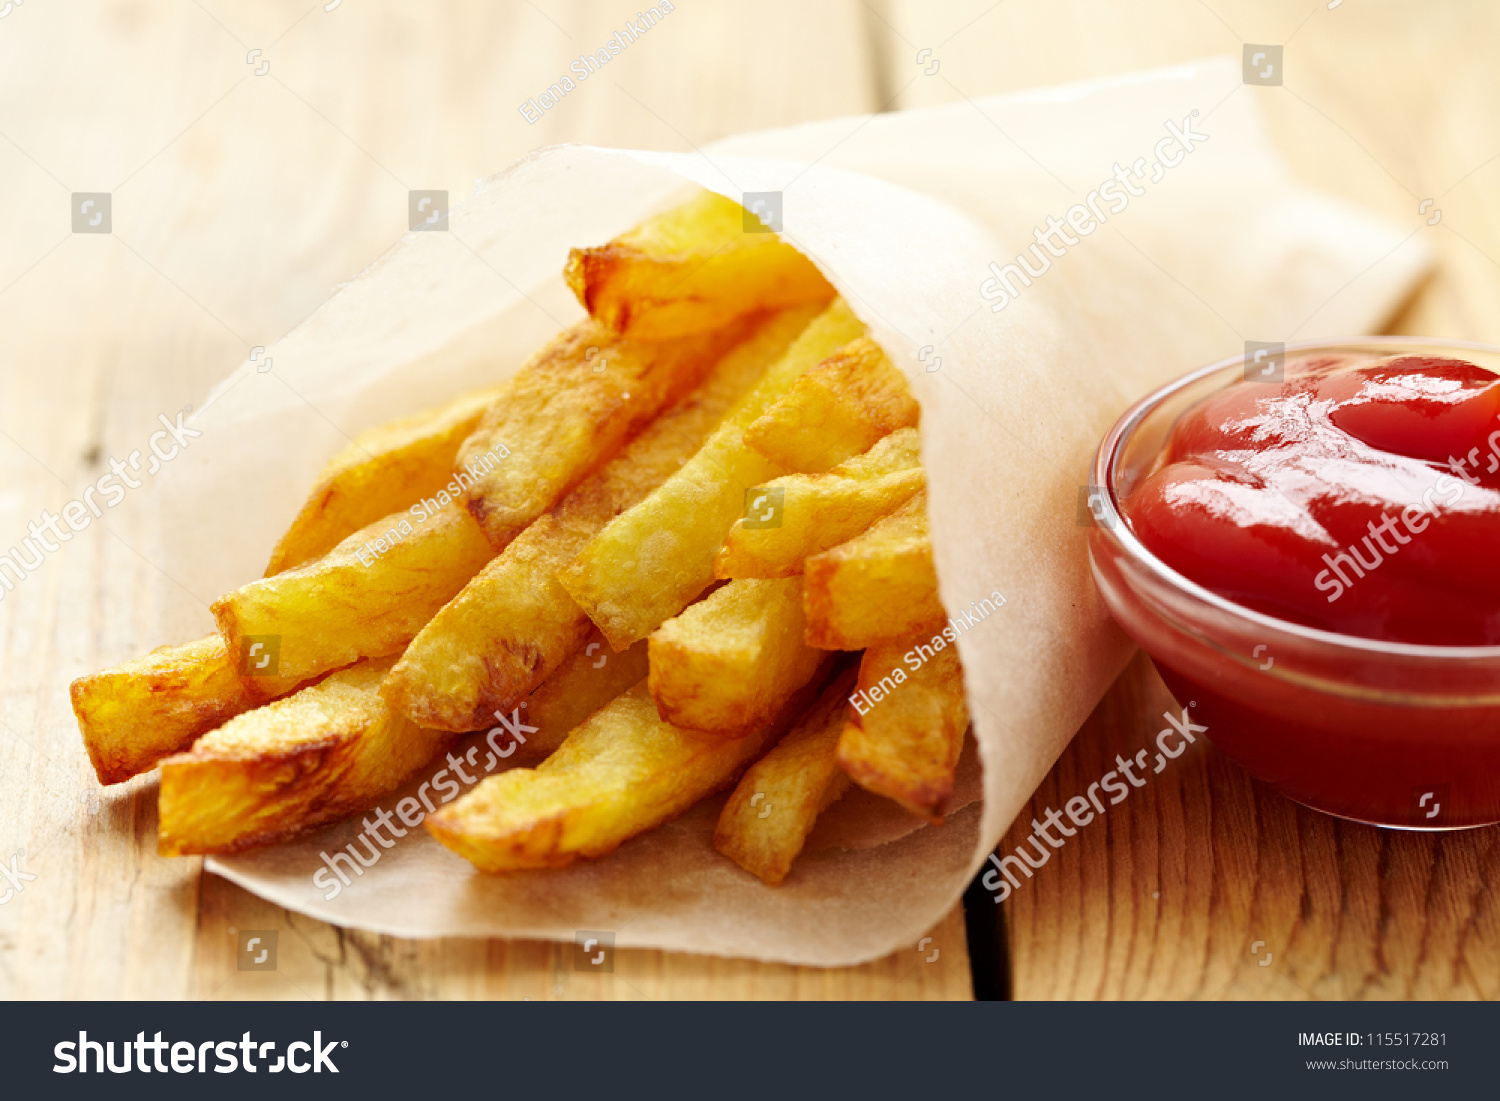 french fries with ketchup - photo #21